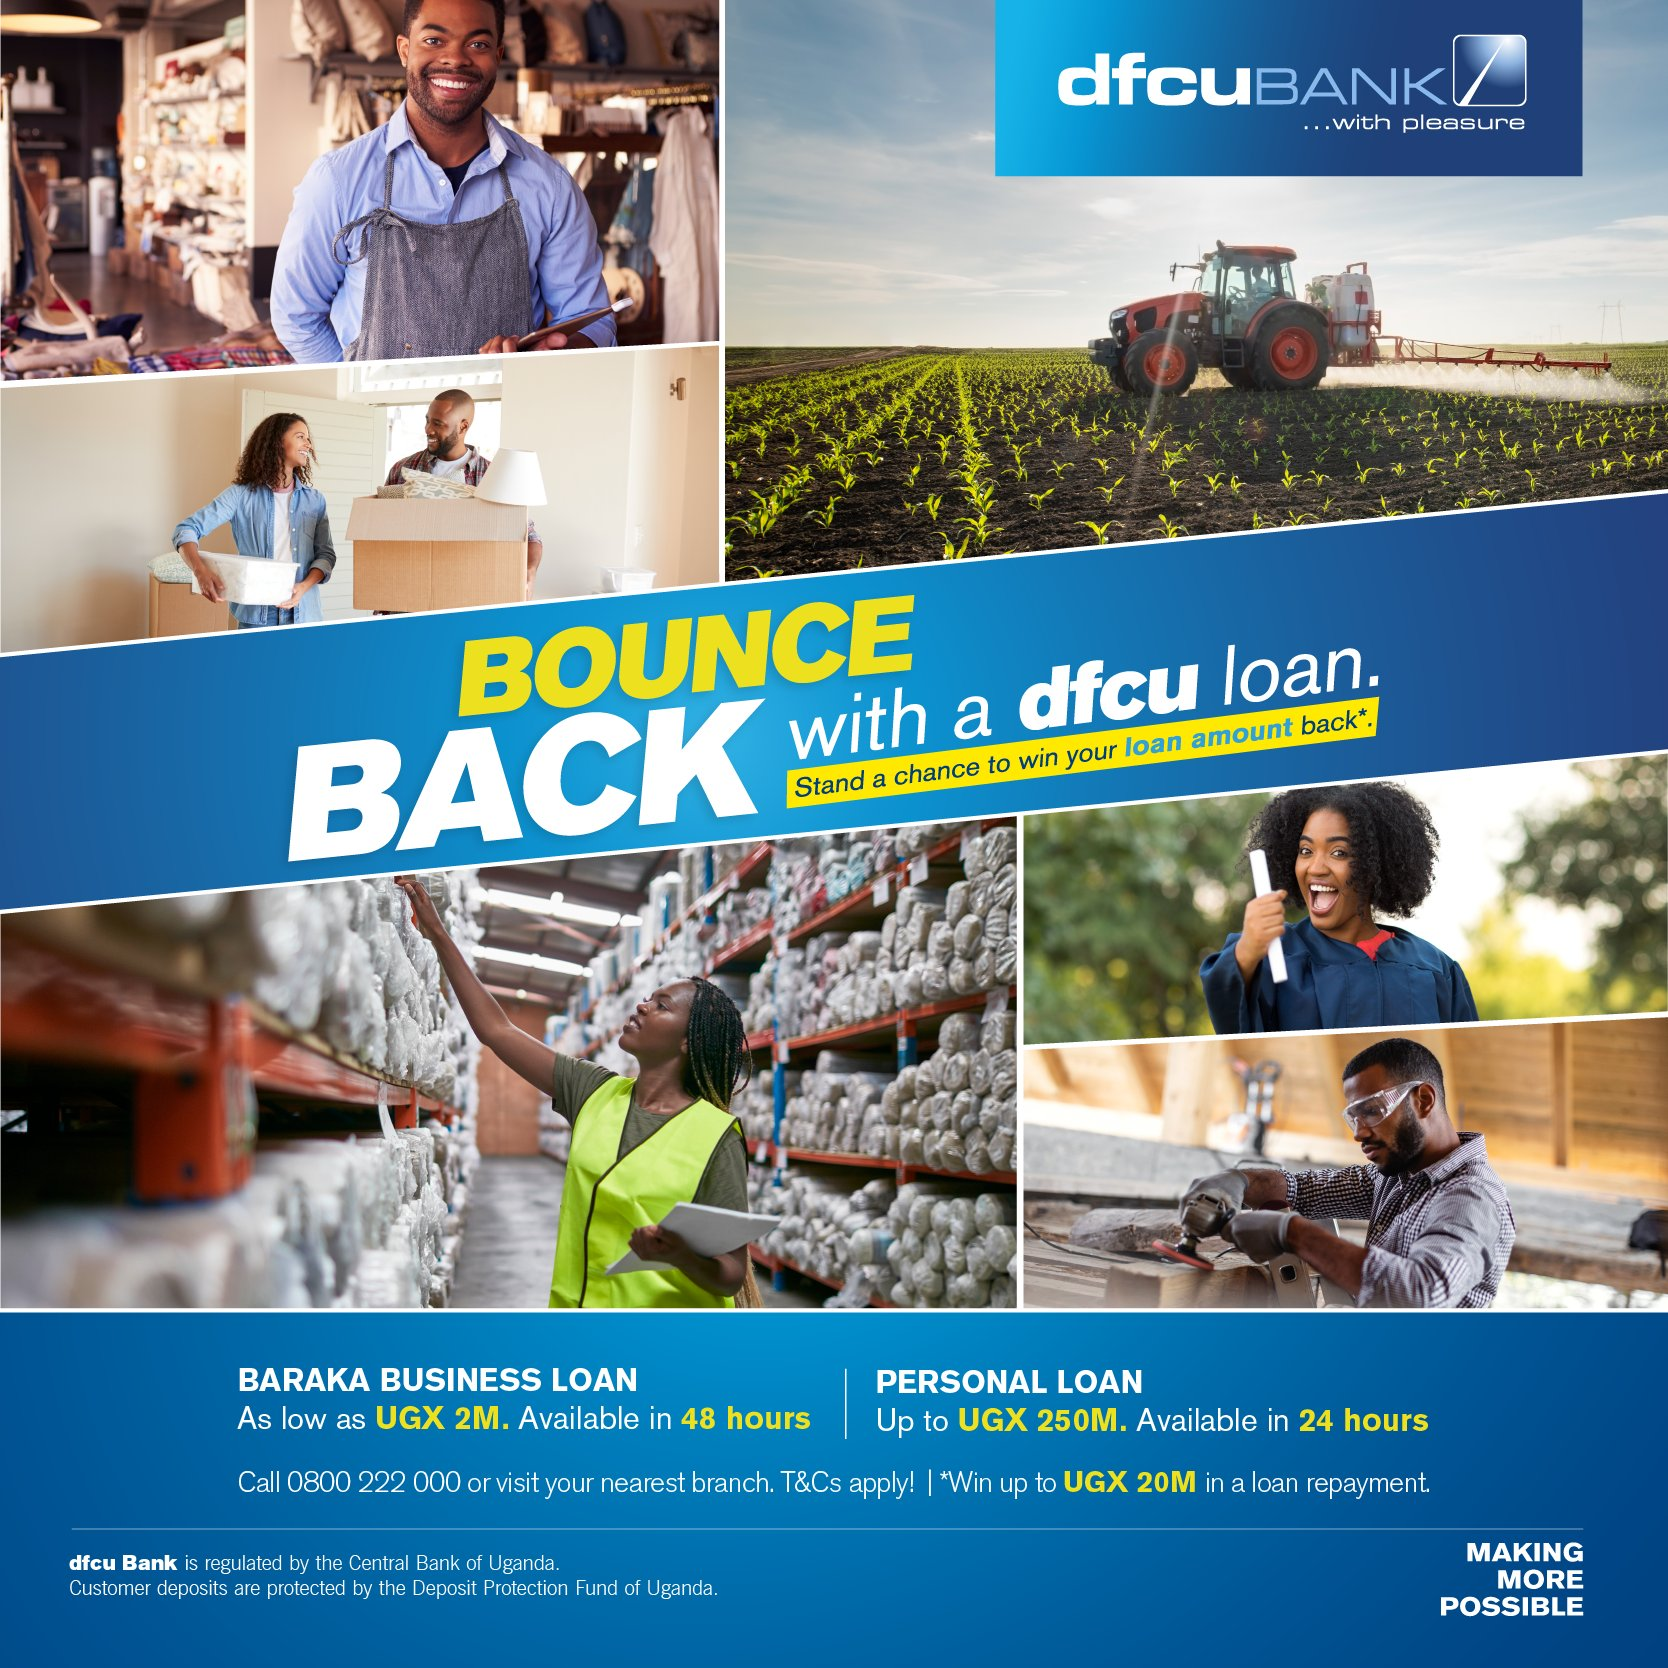 One also stands a chance to win back their loan amount, in the new 'Bounce Back' campaign (Picture: Twitter)